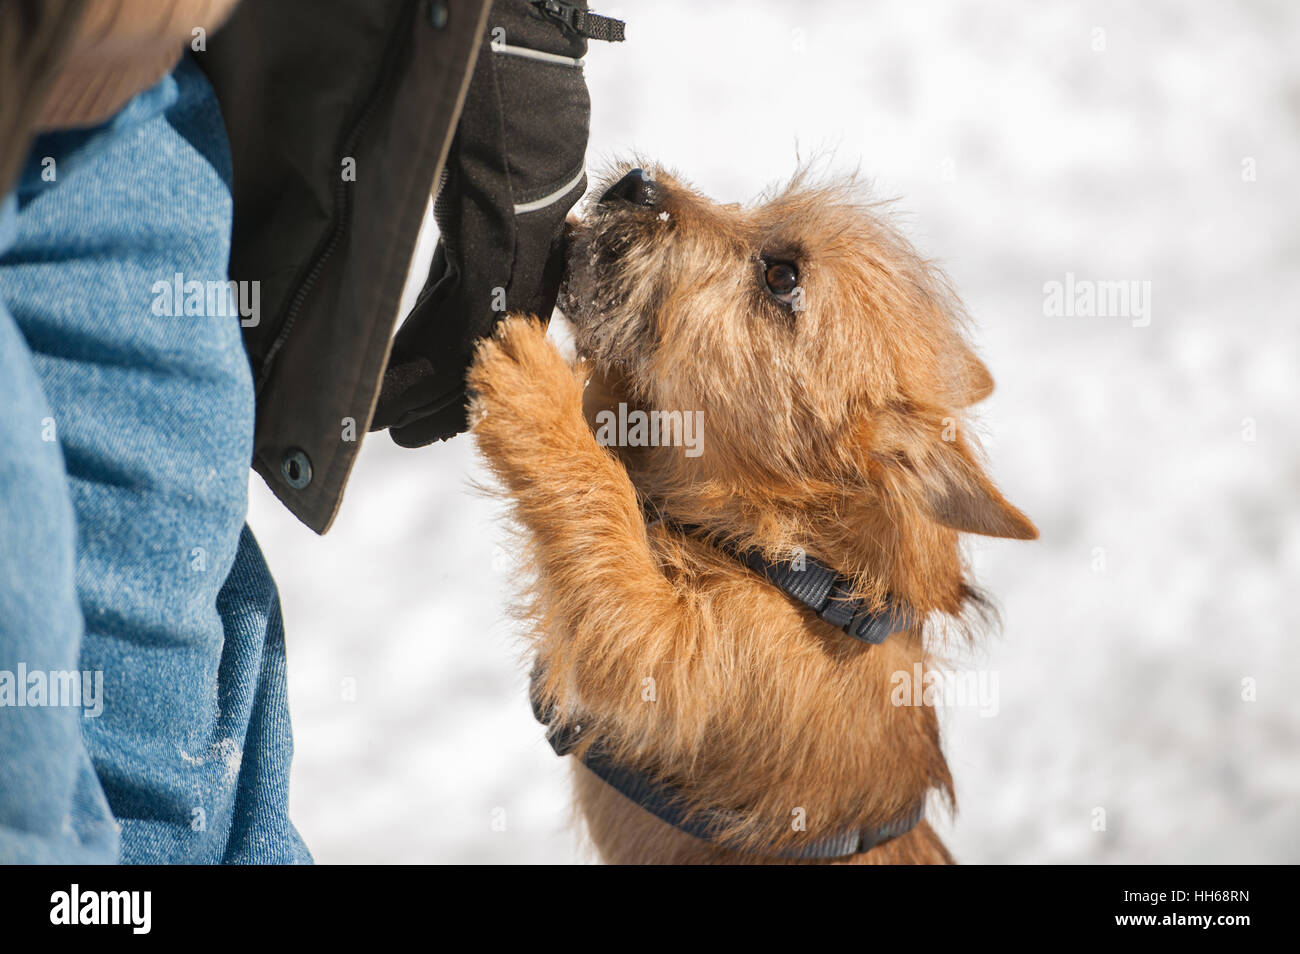 Simple Cairn Terrier Ball Adorable Dog - cute-cairn-terrier-puppy-playing-outside-in-cold-winter-snow-young-HH68RN  Pic_662776  .jpg